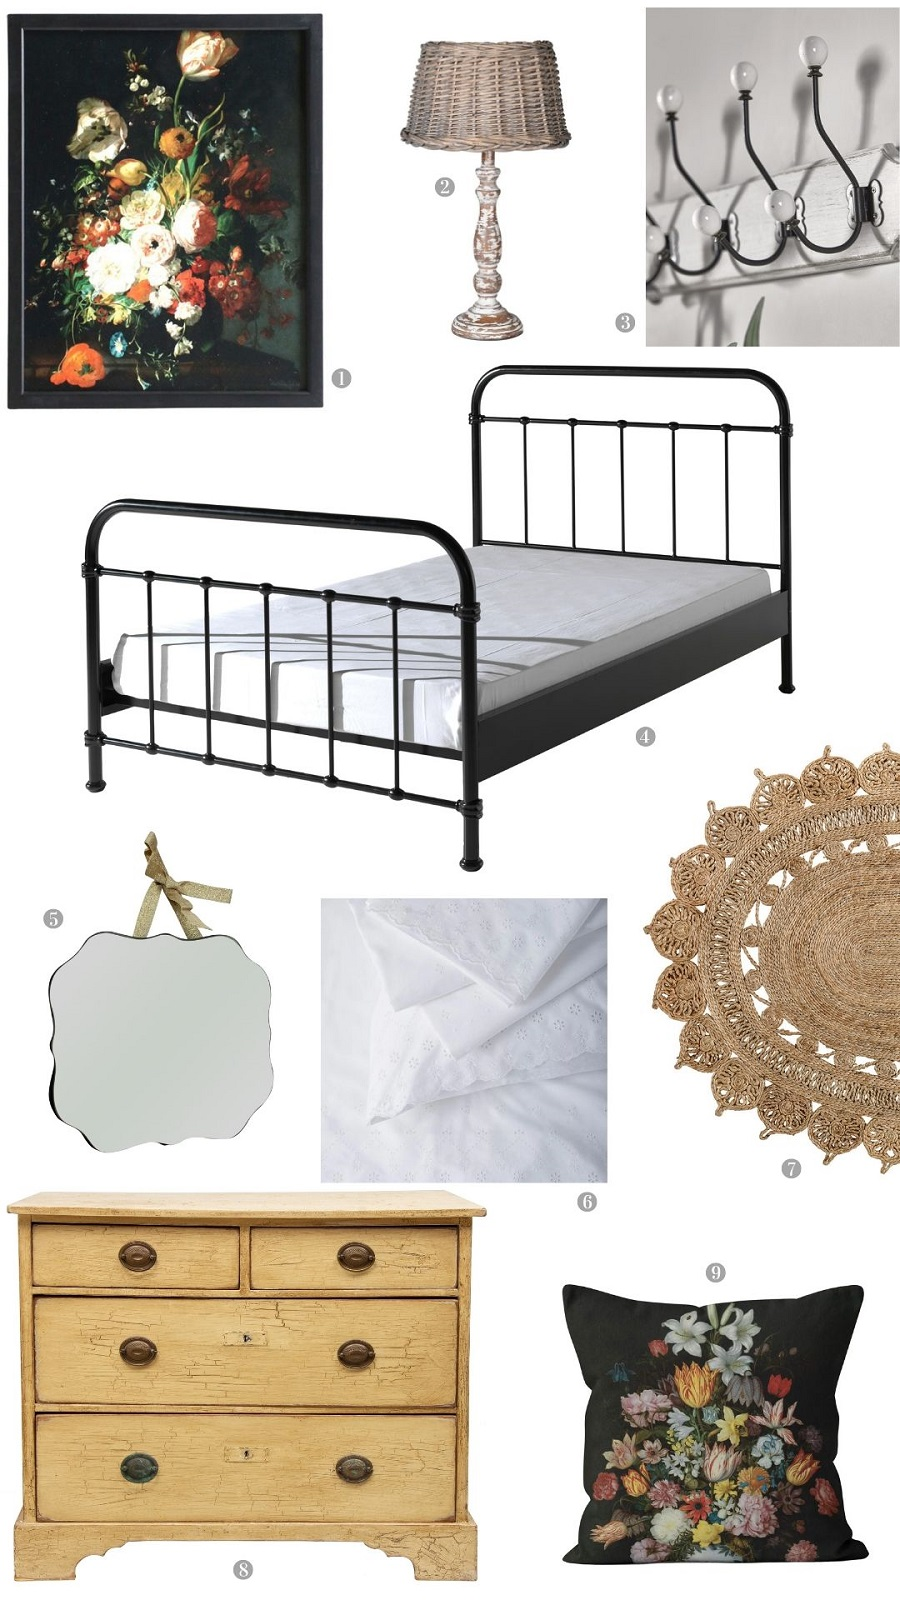 A Simple French Country Bedroom - Get The Look